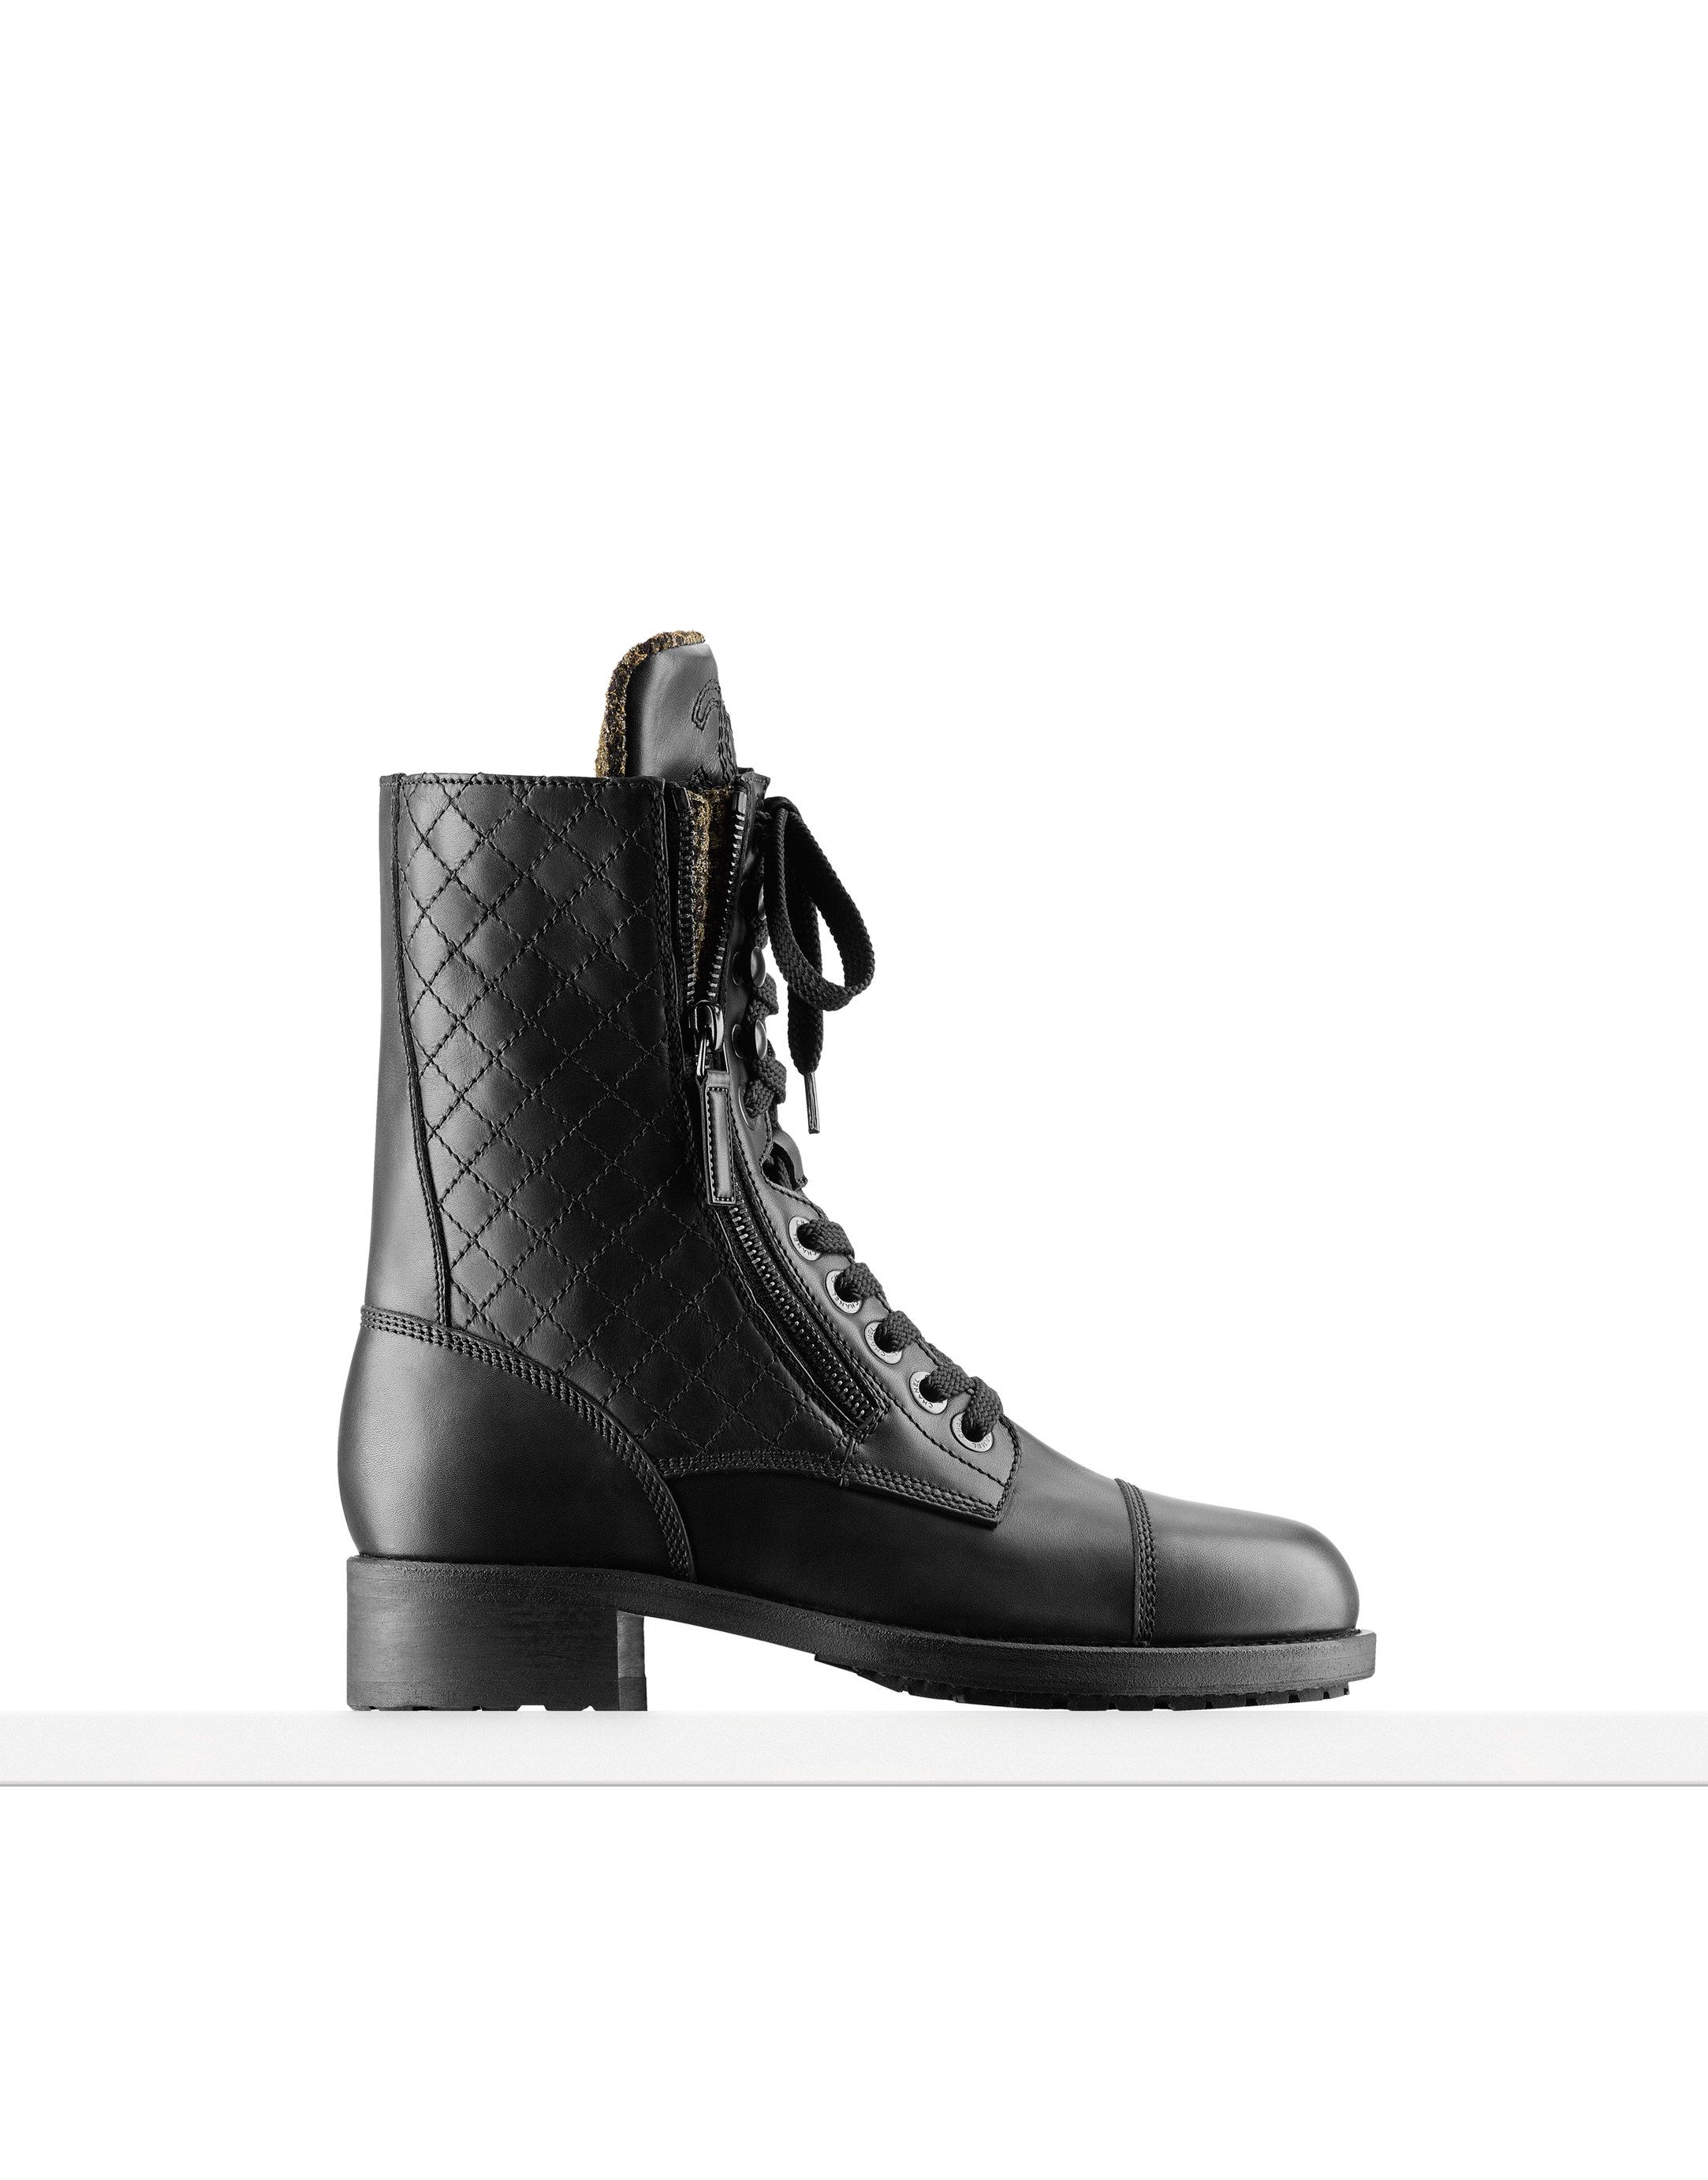 chanel Calfskin and tweed high boots   CHANEL in 2019   Boots, Shoes ... cc4d2b768d